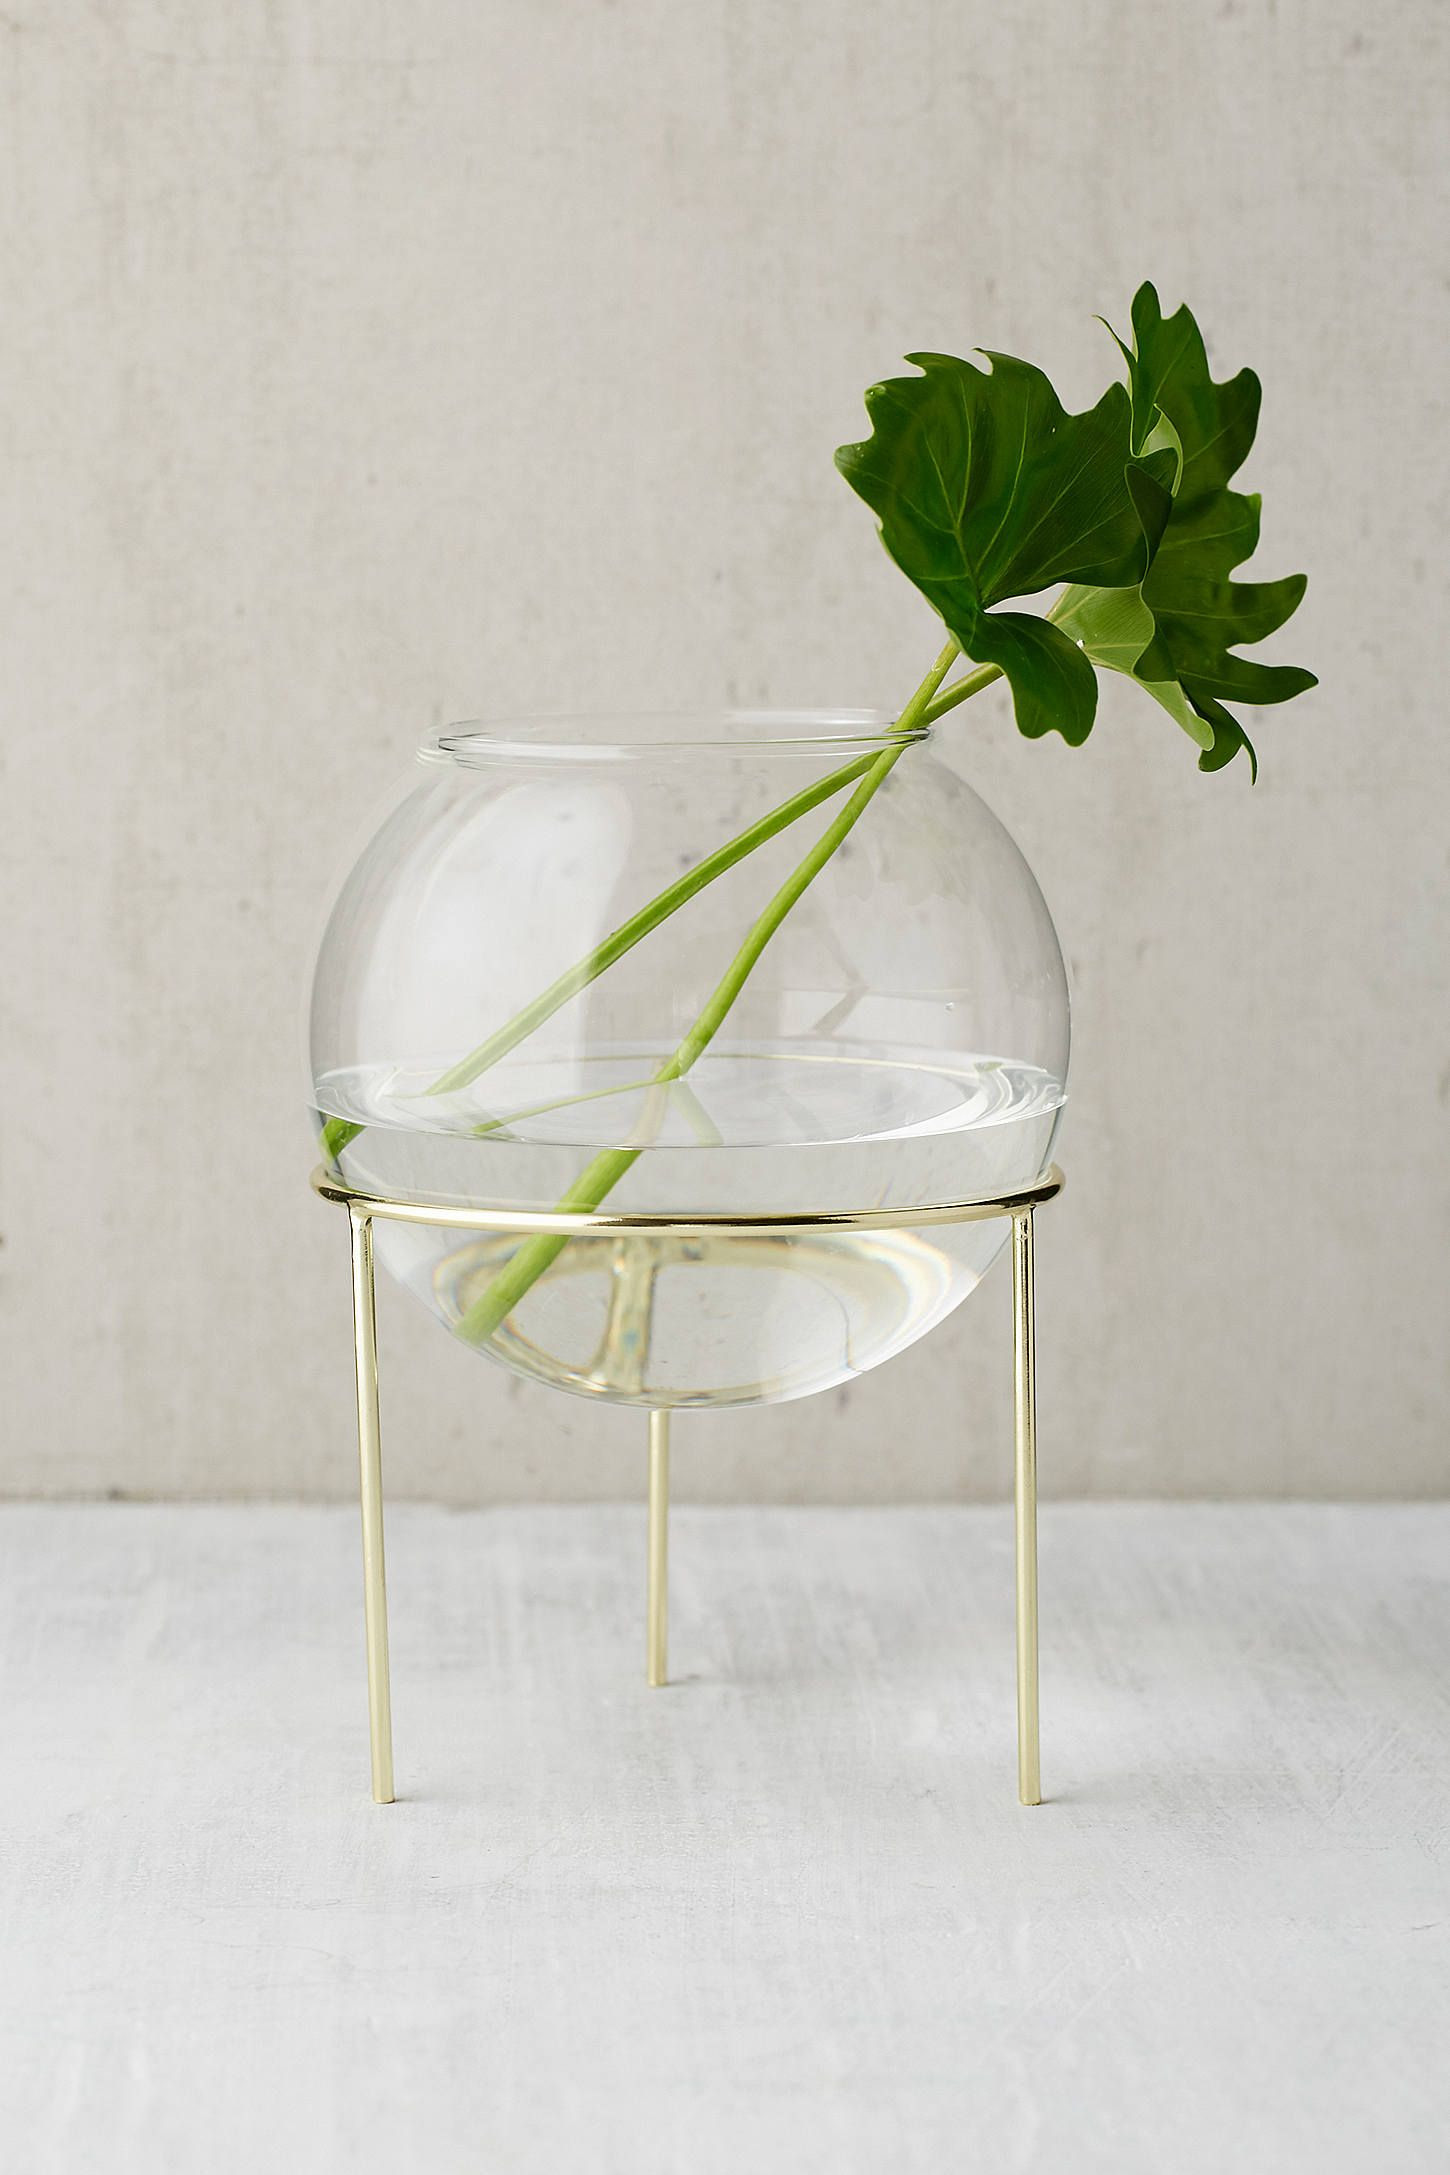 flower vase stand online of ida glass globe planter tripod stand home pinterest tripod for ida glass globe planter tripod stand